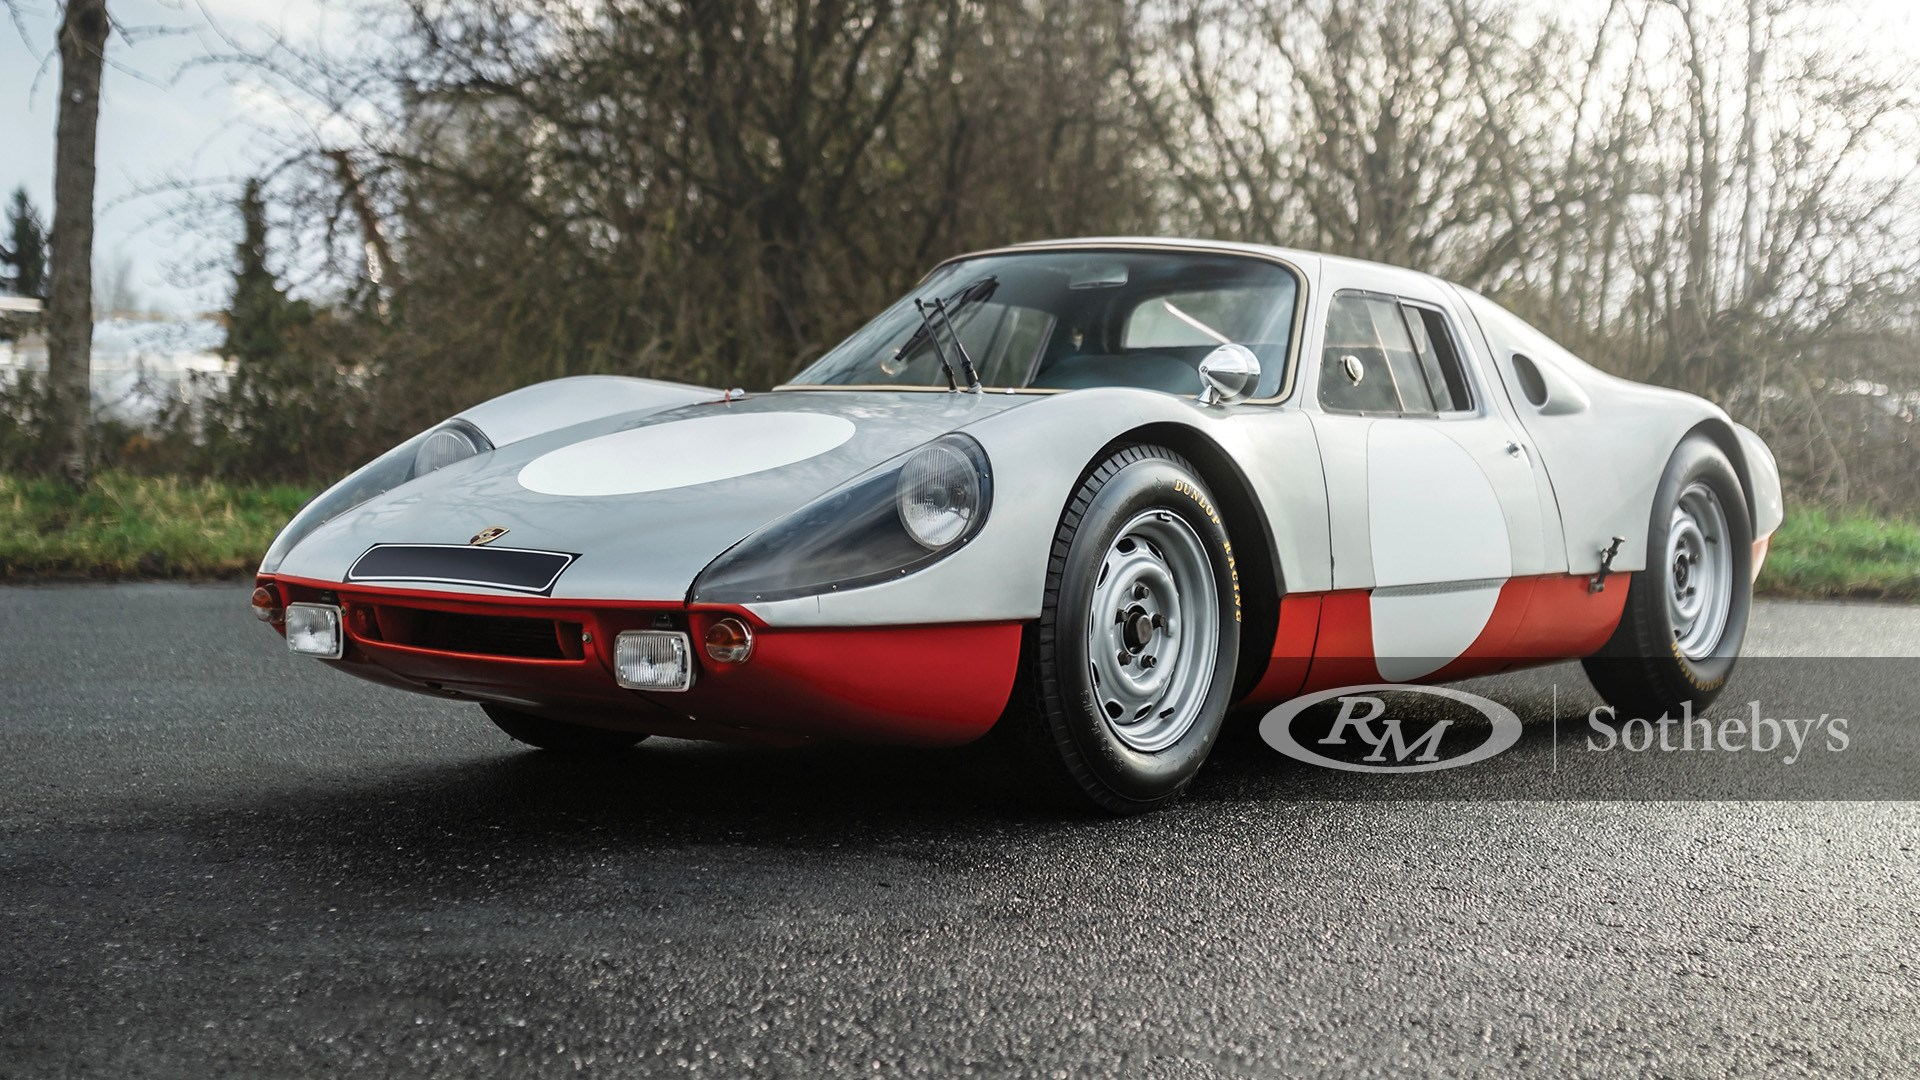 The European Sale Featuring The Petitjean Collection, 1964 Porsche 904 GTS